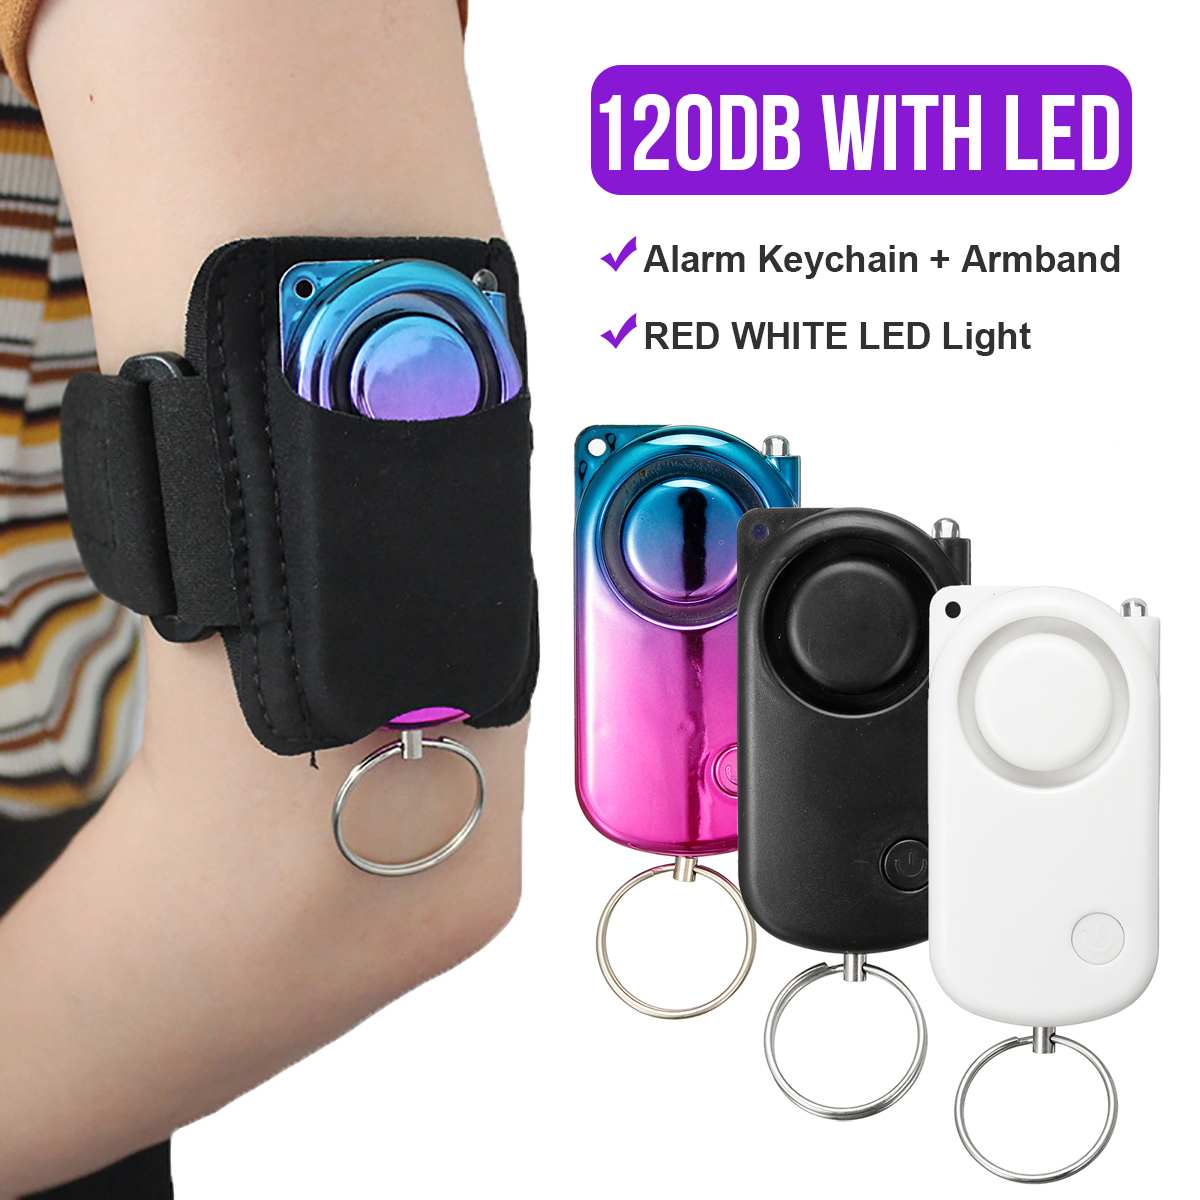 120dB Personal Security Alarm Anti-Wolf Device Protection For Women Alarm New Armband Ring With LED Light Lightweight Portable